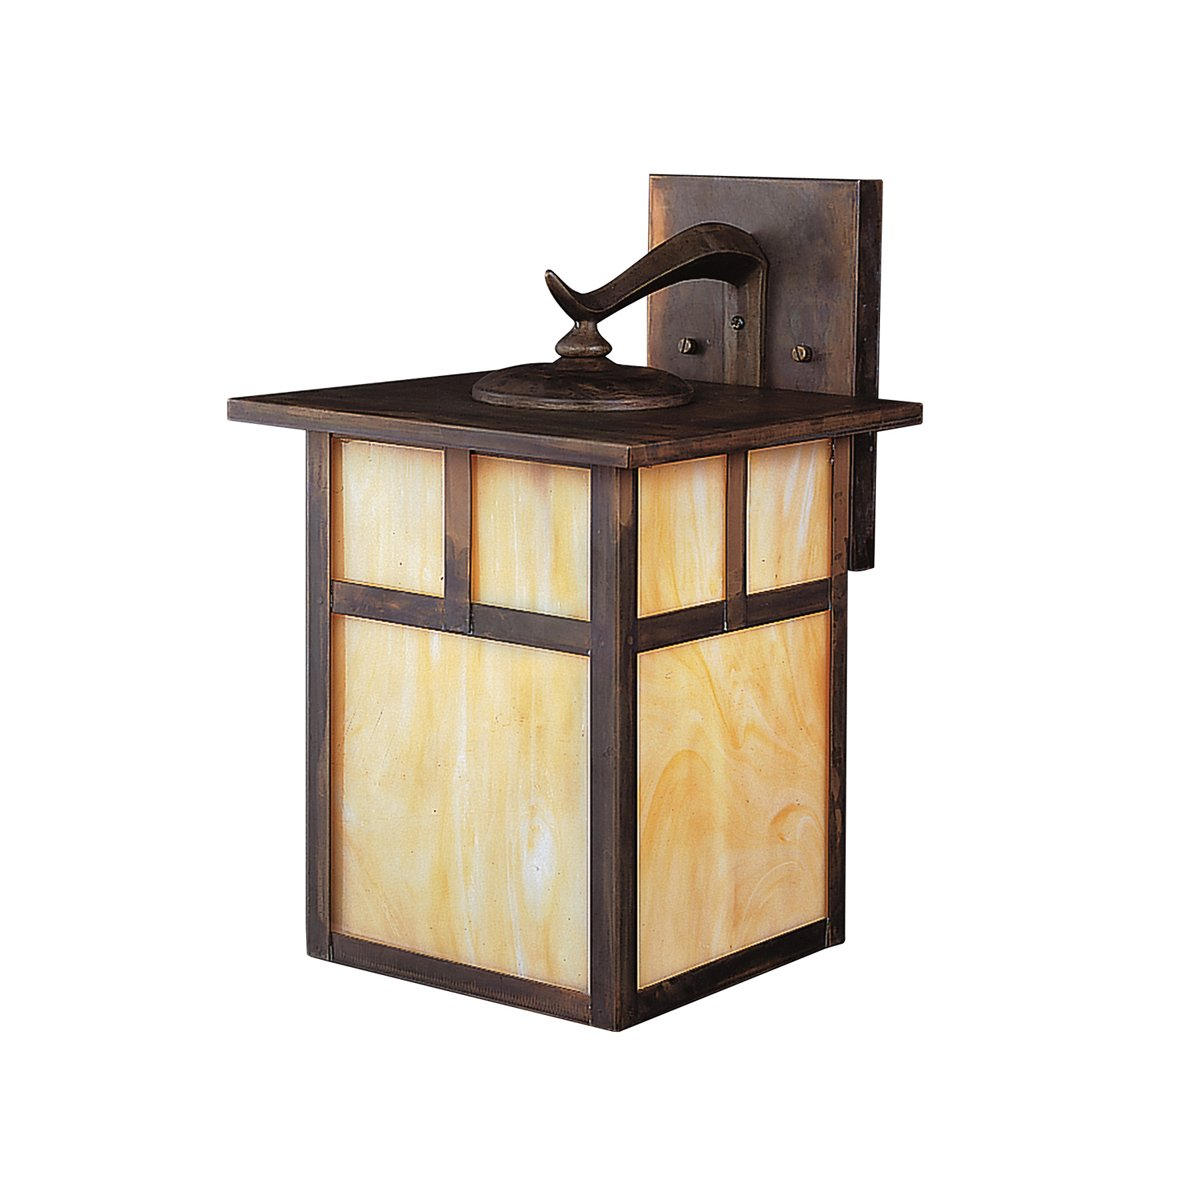 Kichler 9652cv alameda outdoor wall 1 light canyon view wall kichler 9652cv alameda outdoor wall 1 light canyon view wall porch lights amazon aloadofball Choice Image